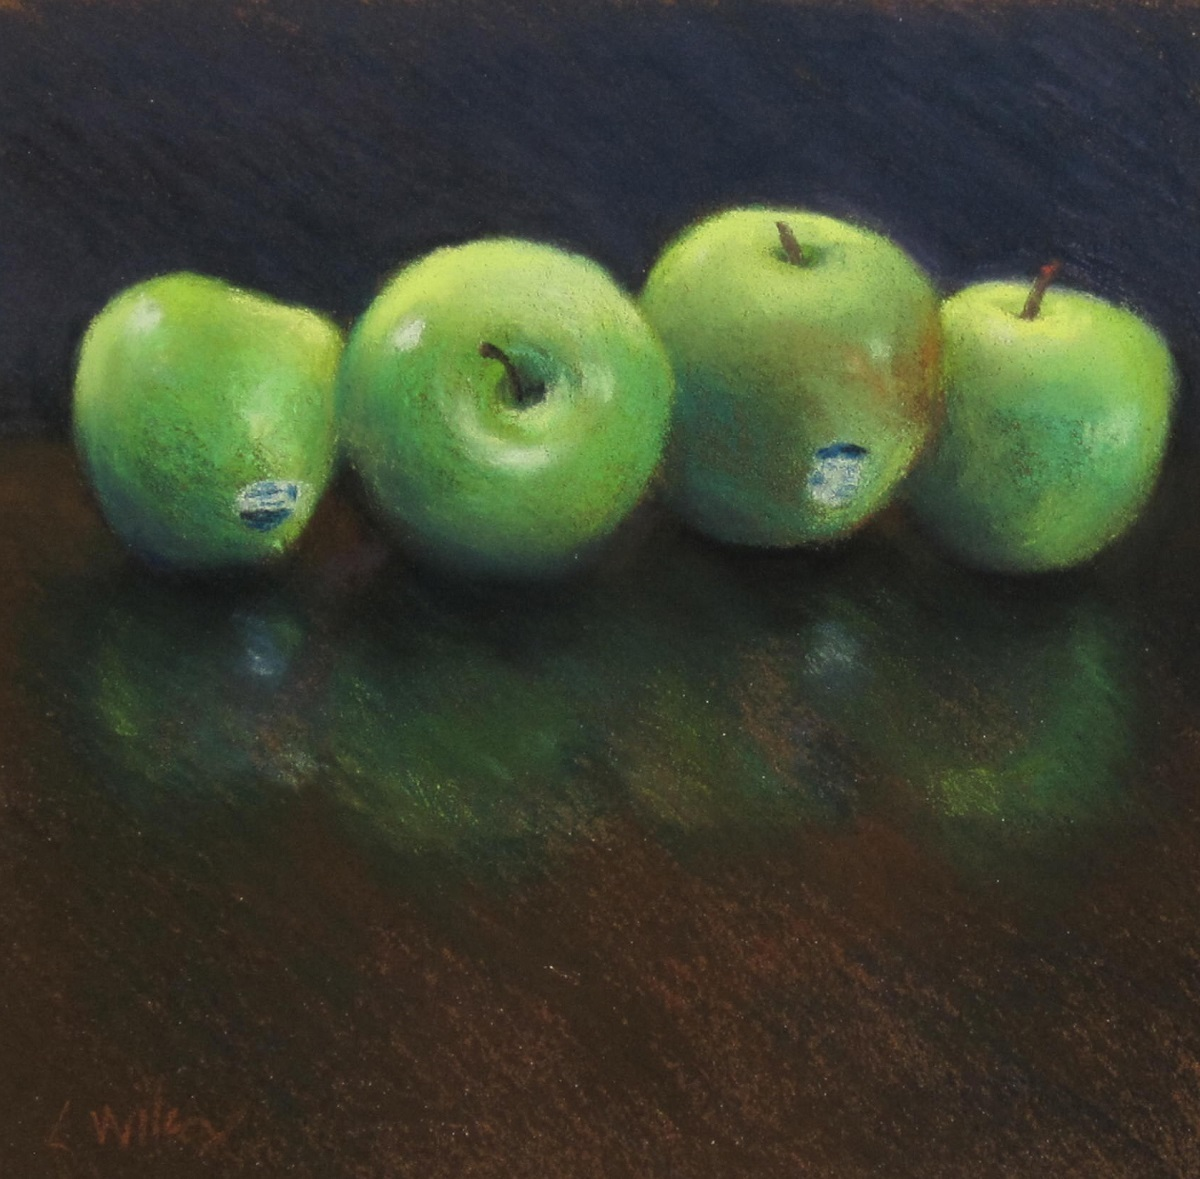 FOUR APPLES (large view)